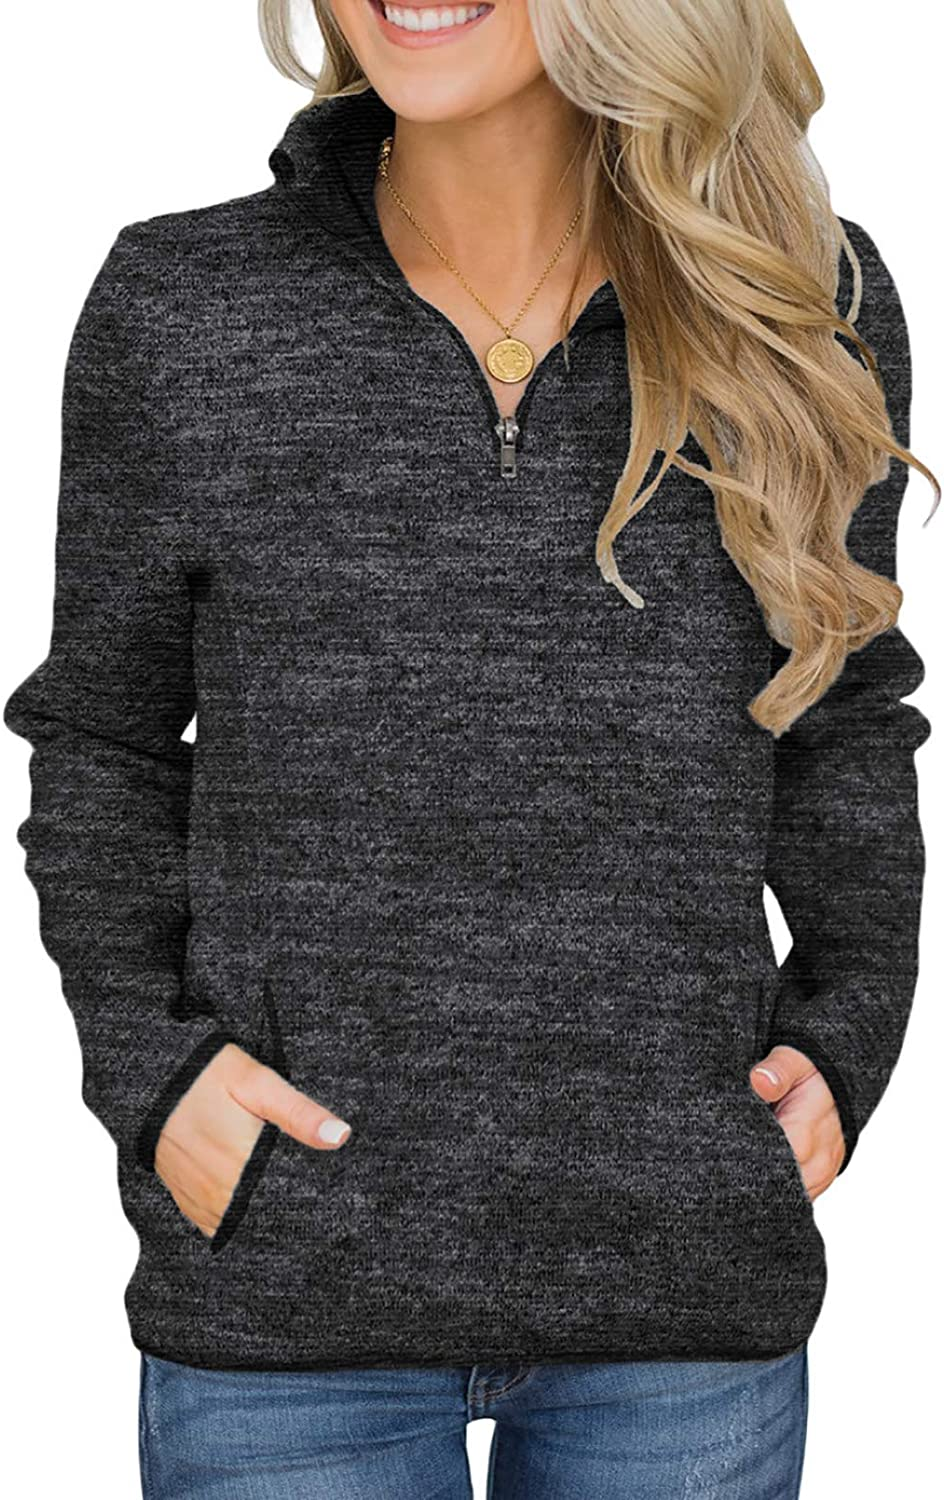 Aleumdr Women Casual Long Sleeve 1/4 Zipper Color Block Sweatshirts Stand Collar Pullover Tunic Tops with Pockets S-XXL